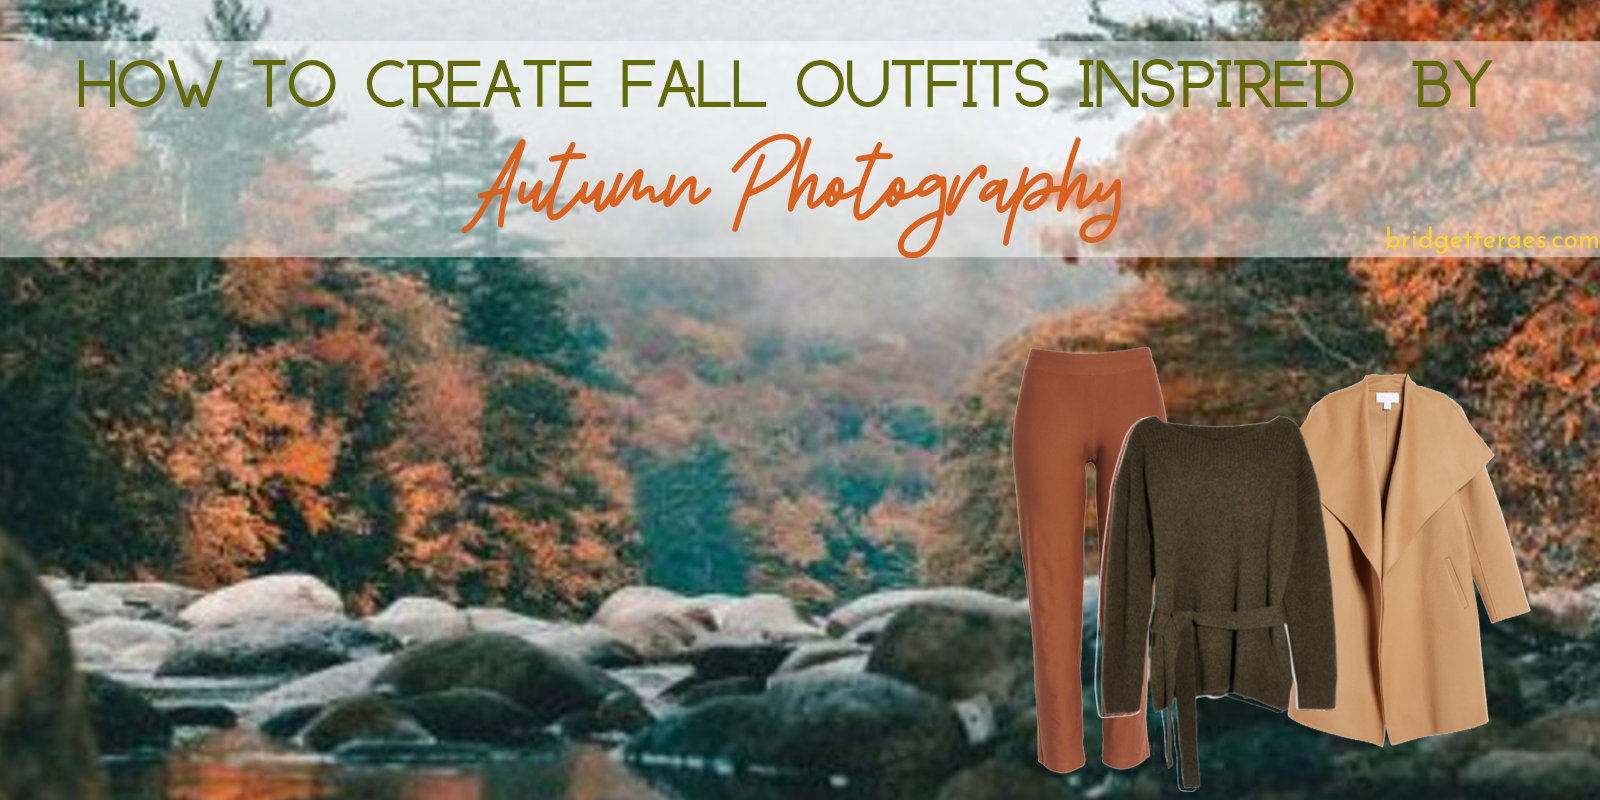 How to Create Fall Outfits Inspired by Autumn Photography